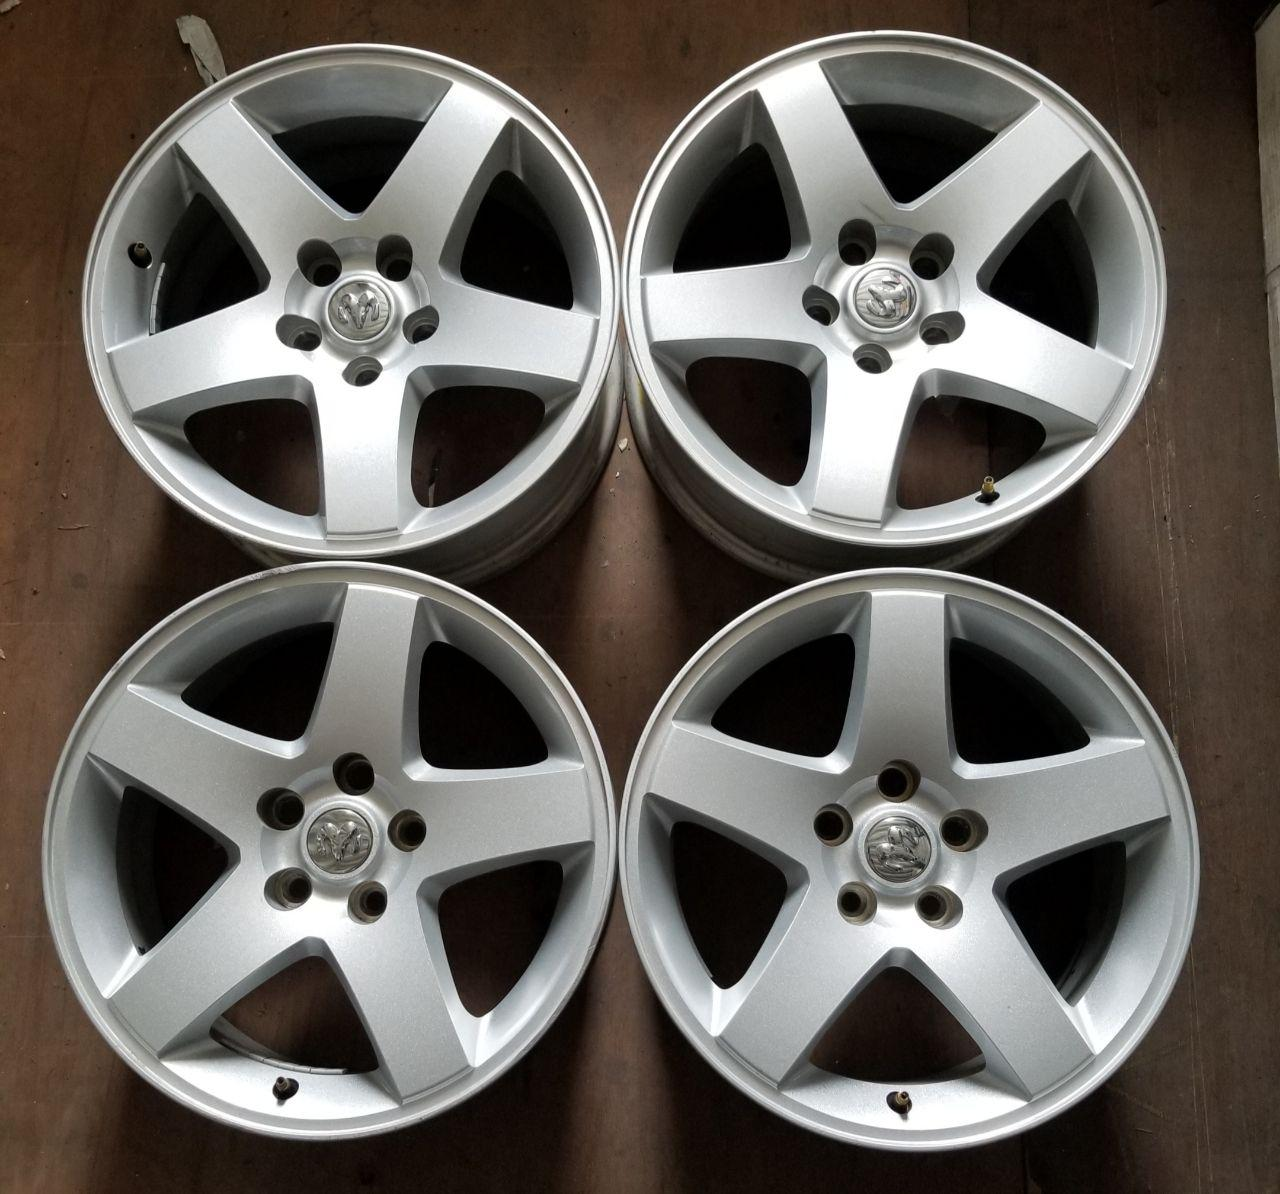 - OEM WHEELS - 2009-2010 DODGE/CHRYSLER CHALLENGER 17x7 5 SPOKE Hollander #2358 /  USED